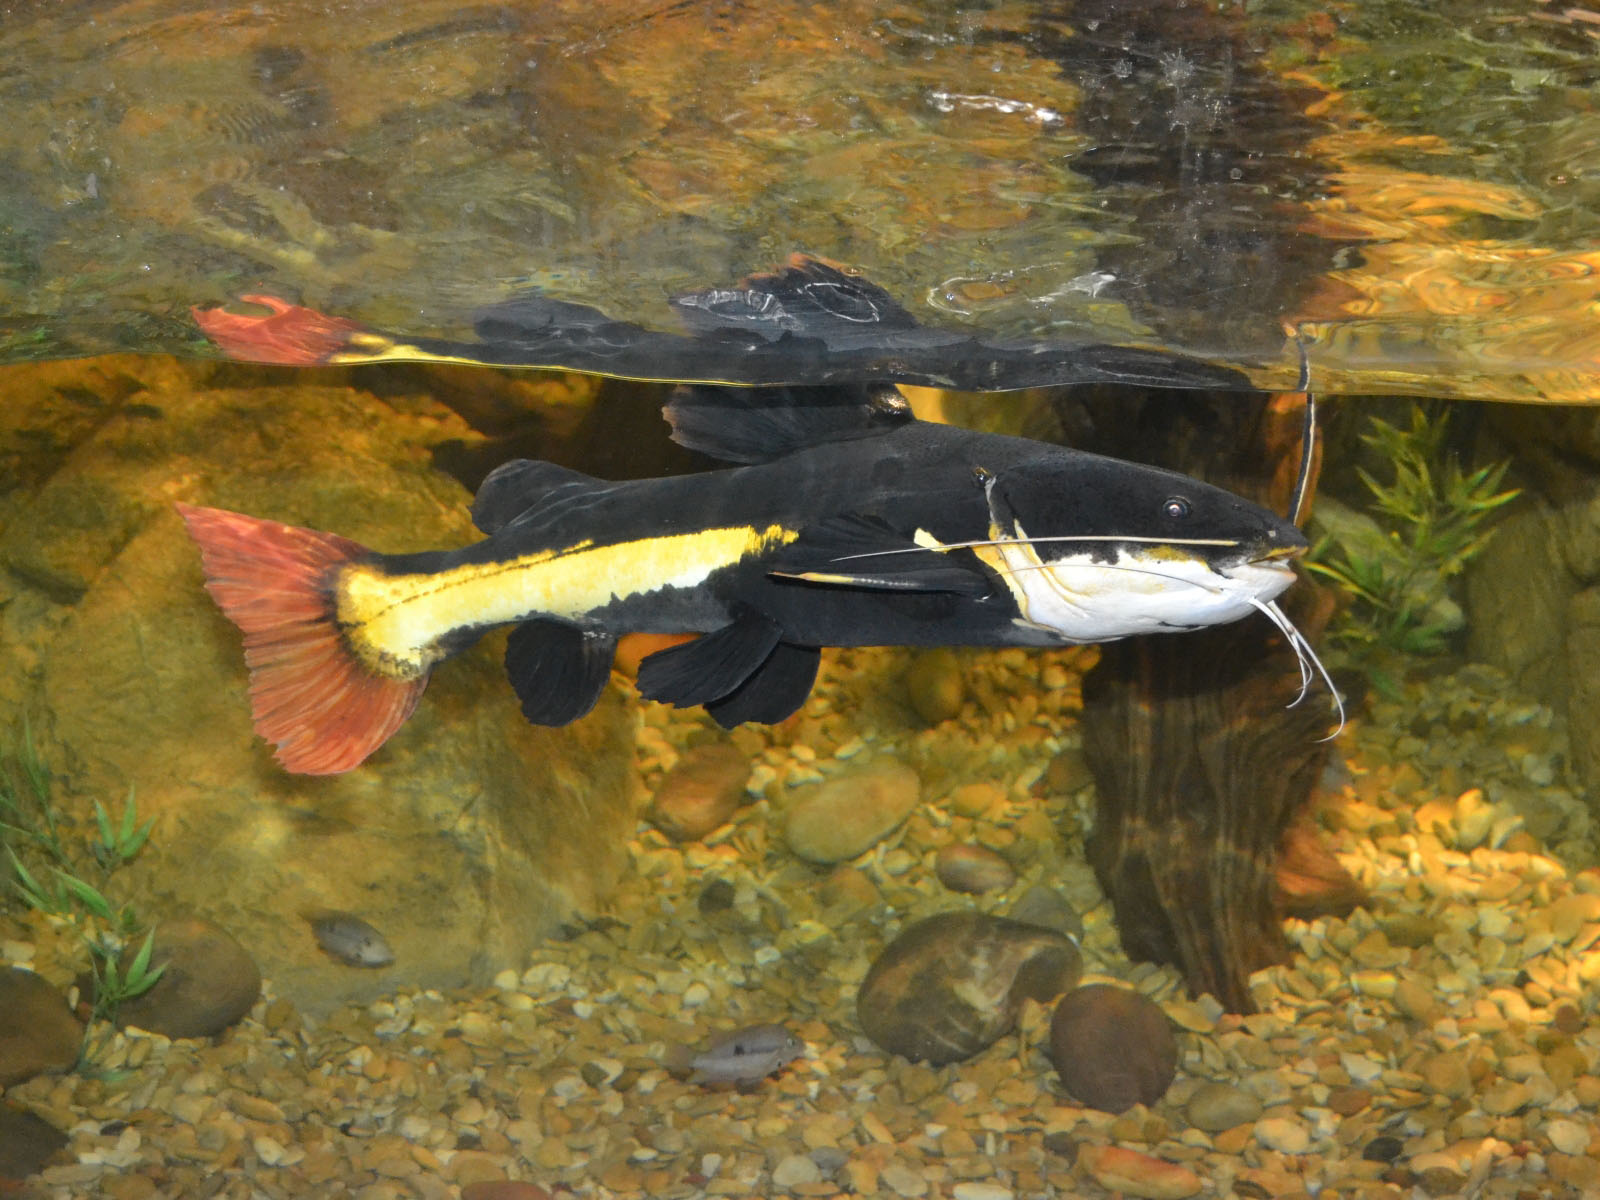 The Online Zoo - South American Redtail Catfish